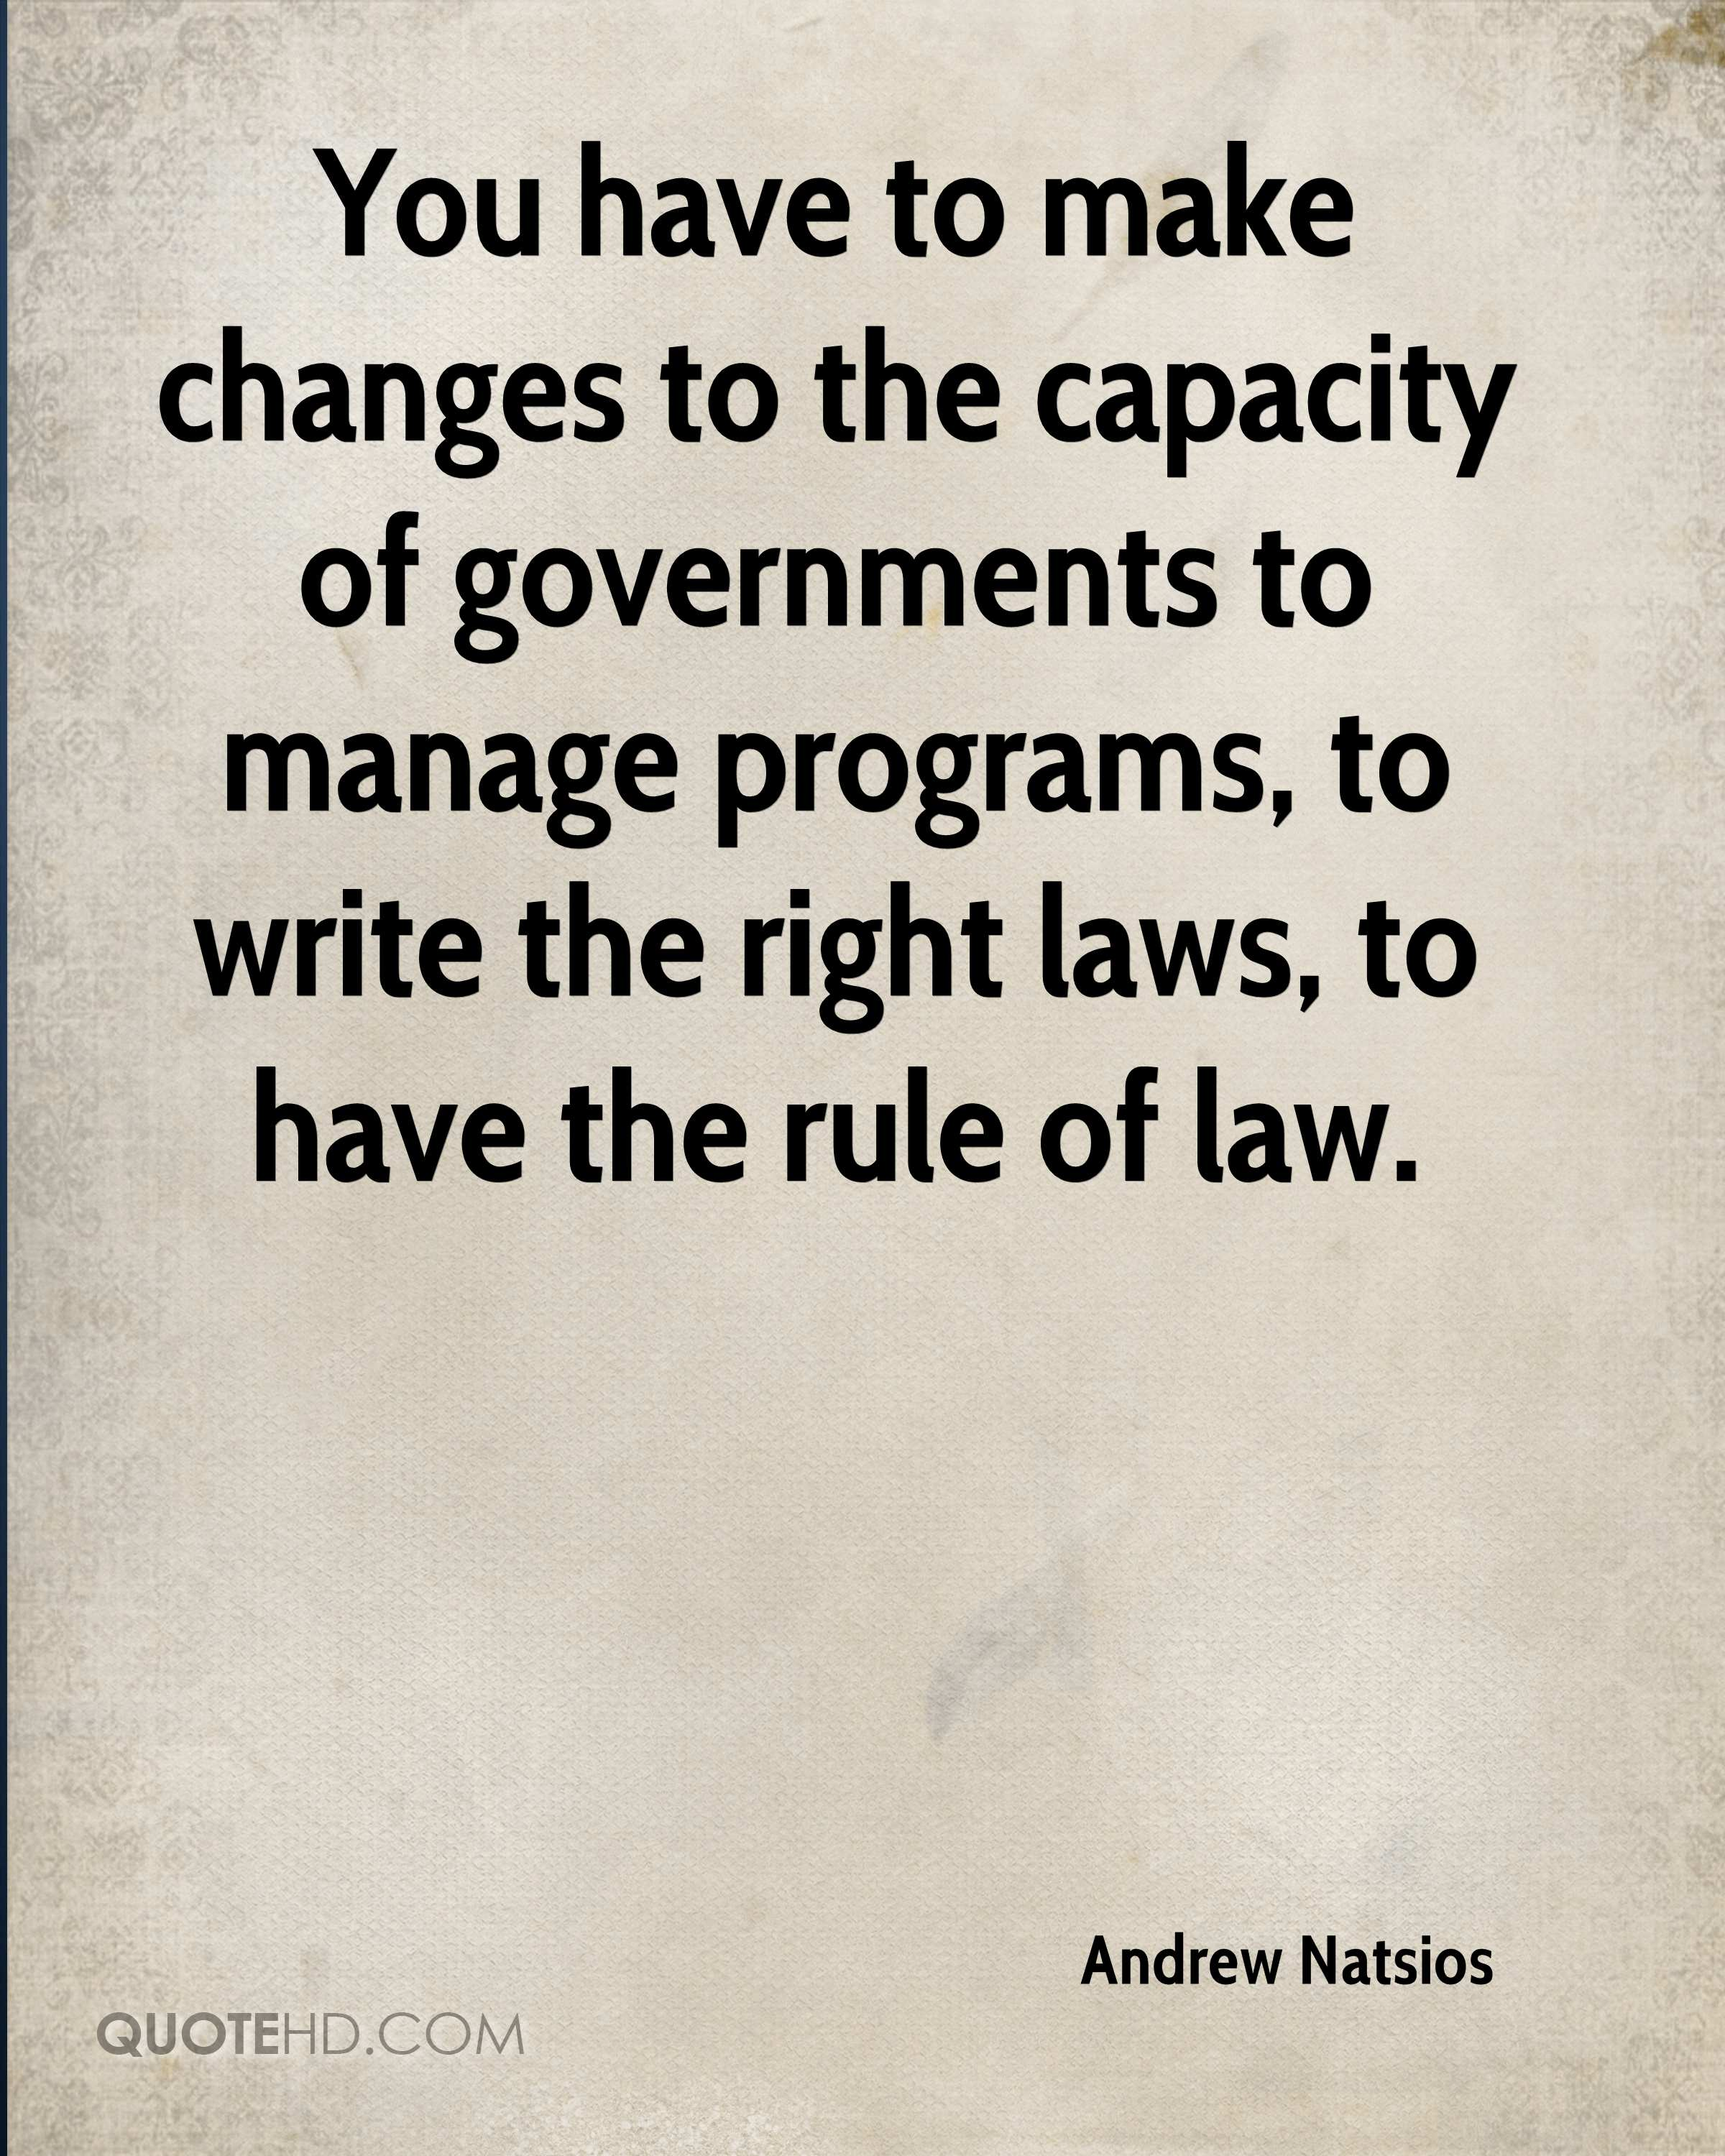 You have to make changes to the capacity of governments to manage programs, to write the right laws, to have the rule of law.